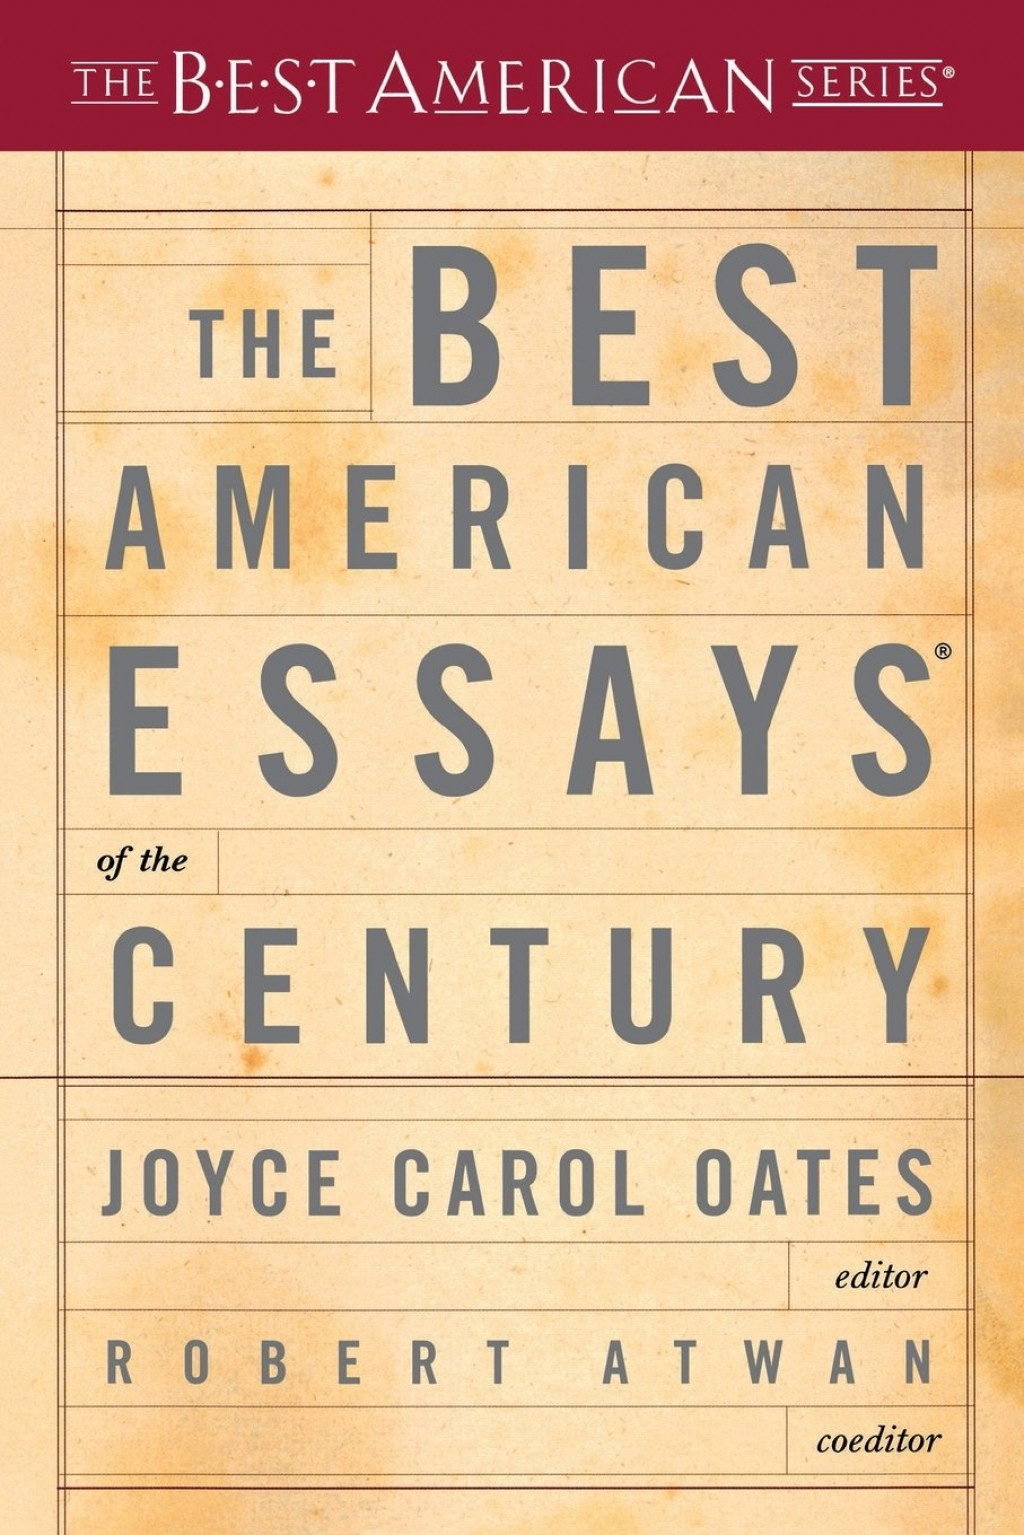 002 The Best American Essays Essay Example Wonderful 2018 Pdf 2017 Table Of Contents 2015 Free Large